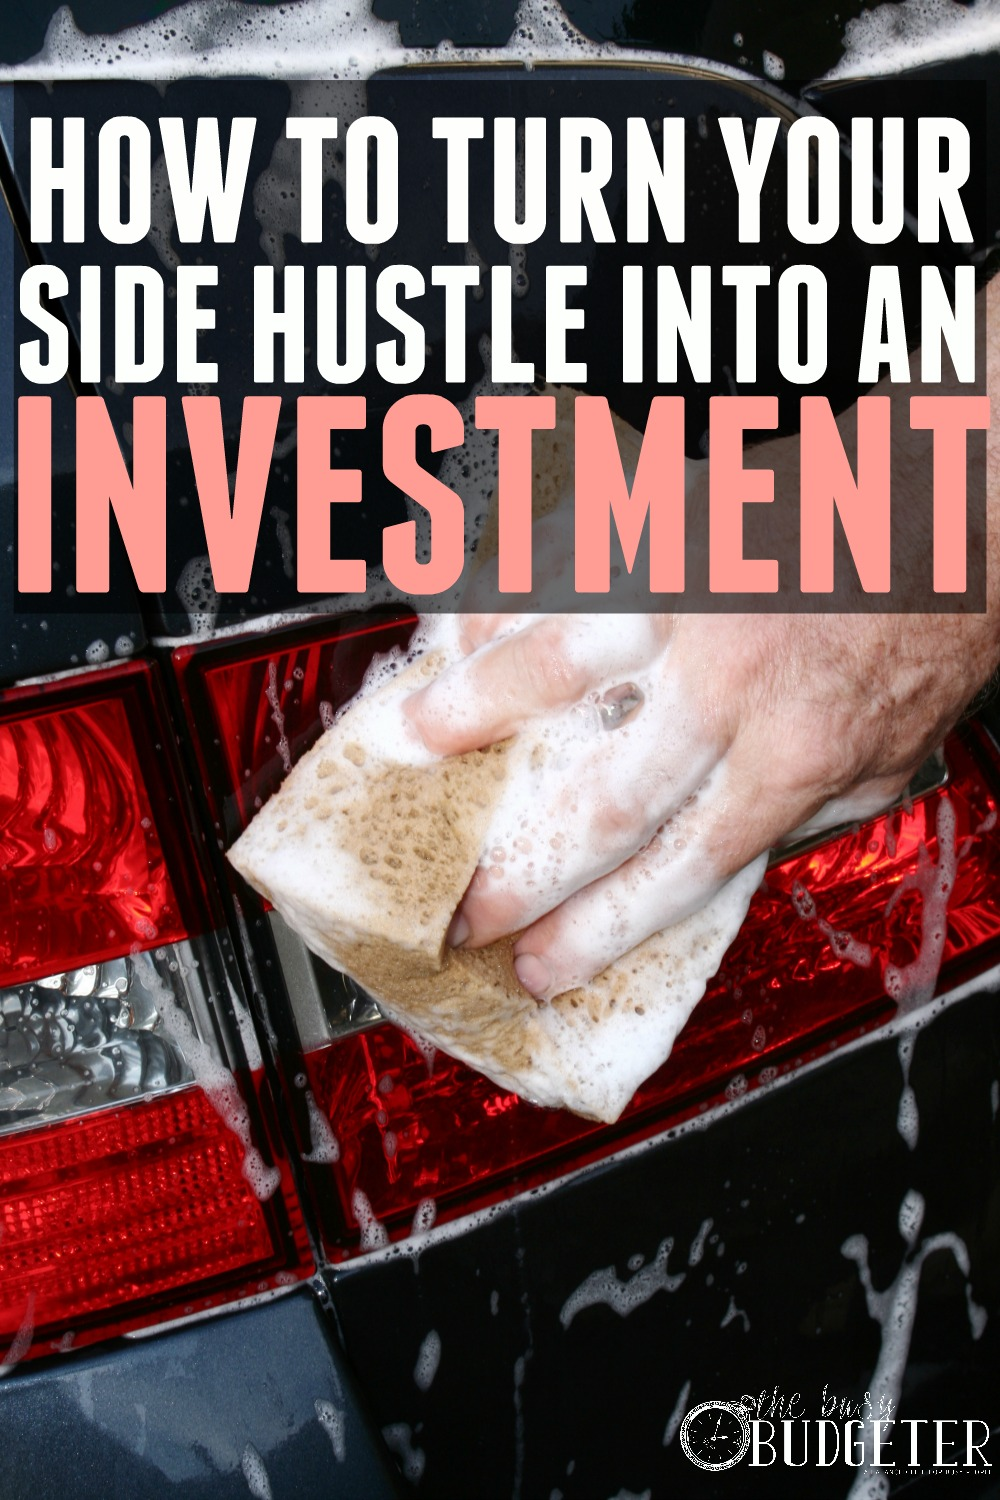 How to turn your side hustle into an investment. DUDE! That's impressive. That's called winning at life right there.